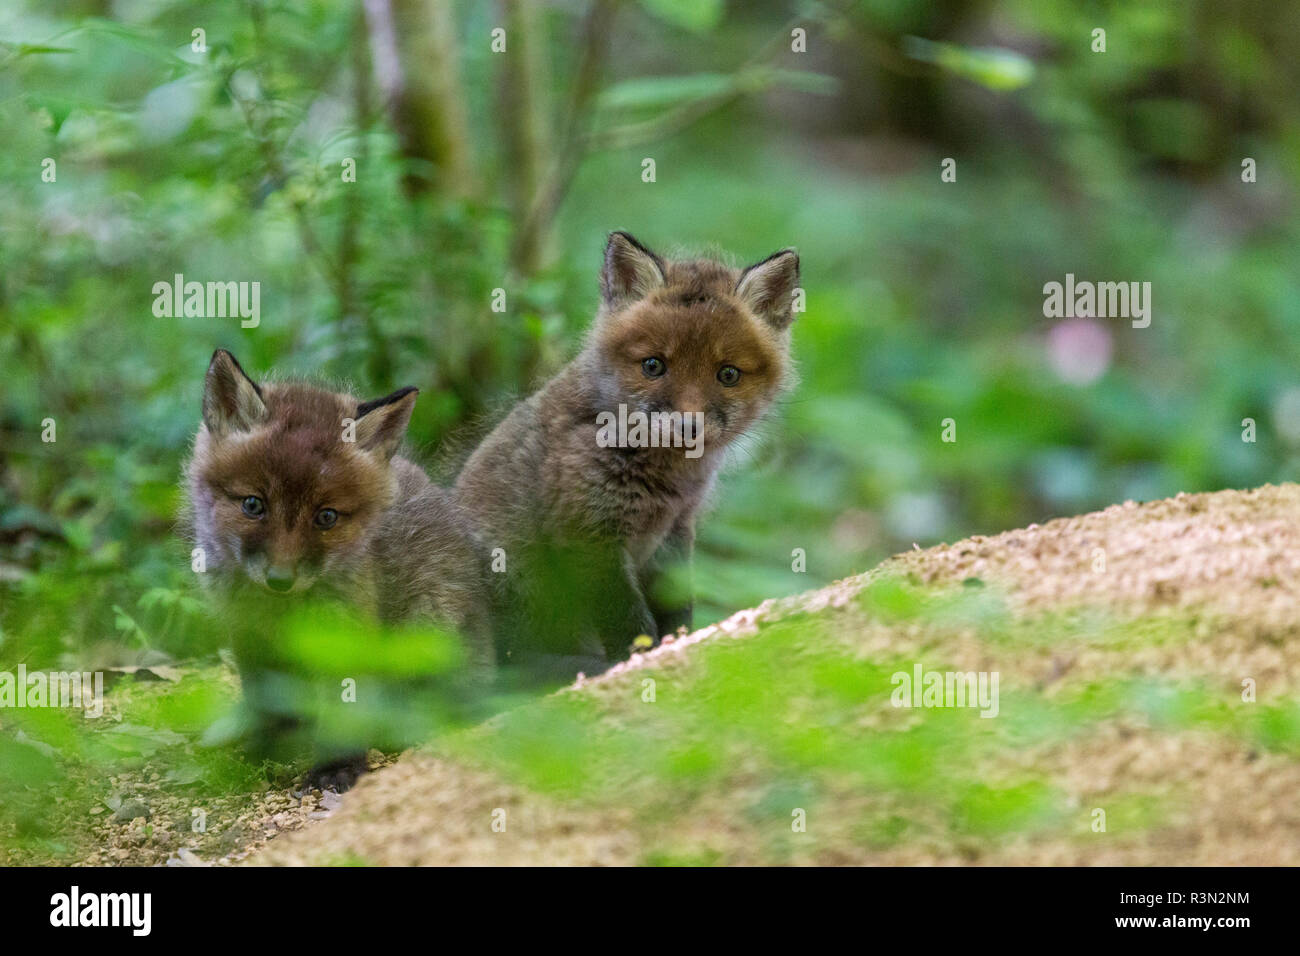 Red fox (Vulpes vulpes) young near the burrow, France - Stock Image